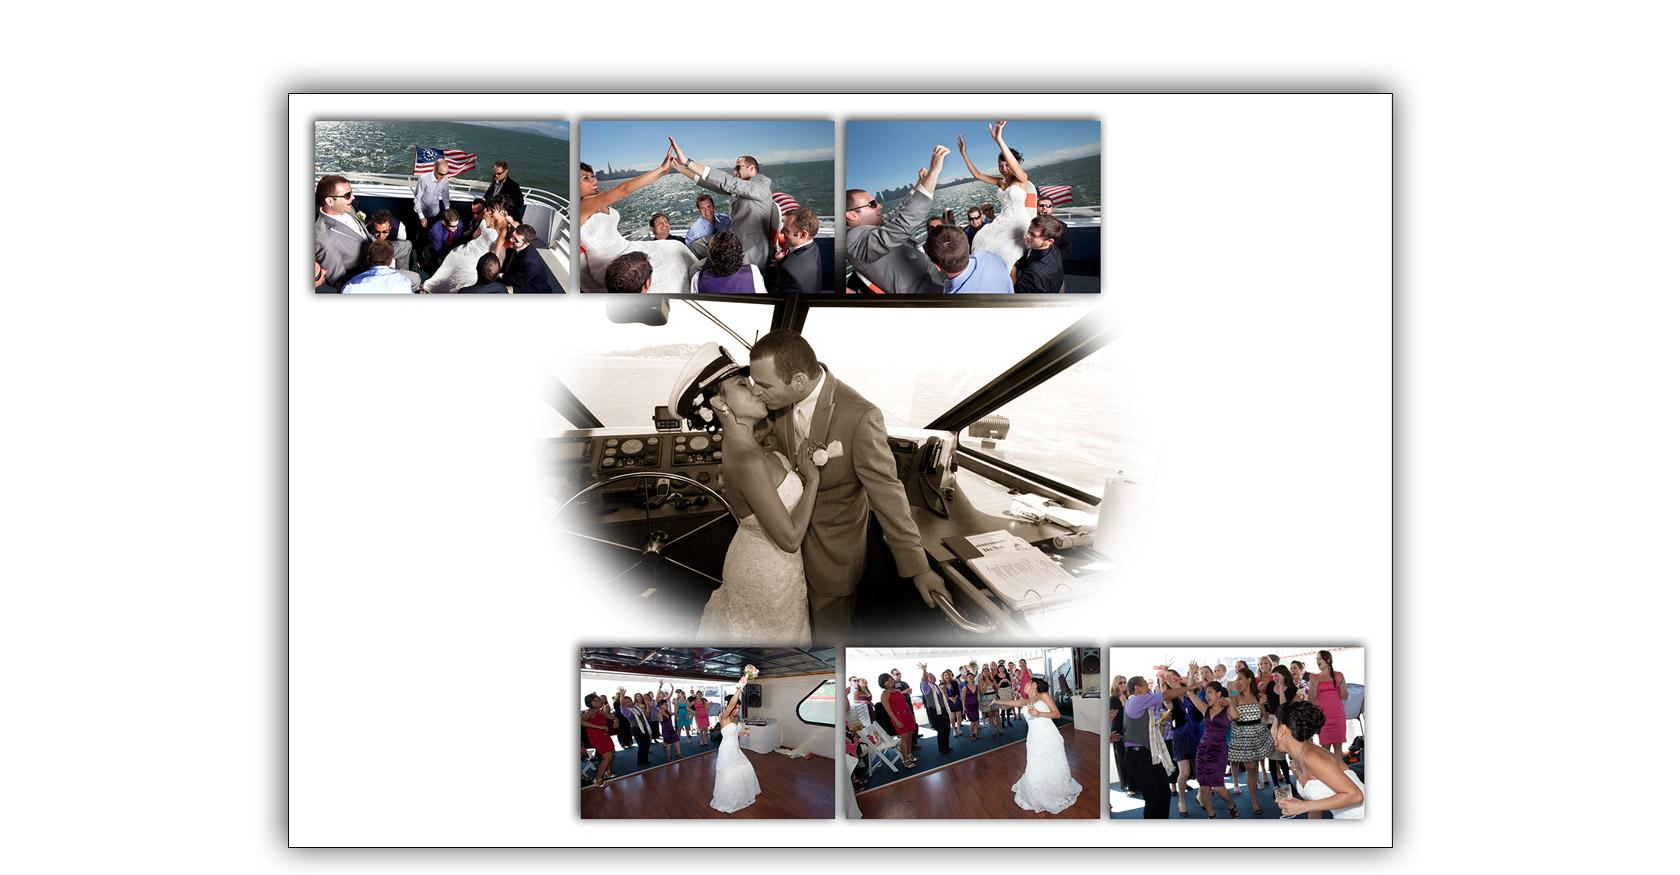 San Francisco Bay yacht boat wedding cruise Commodore Events Merlot photography album 11